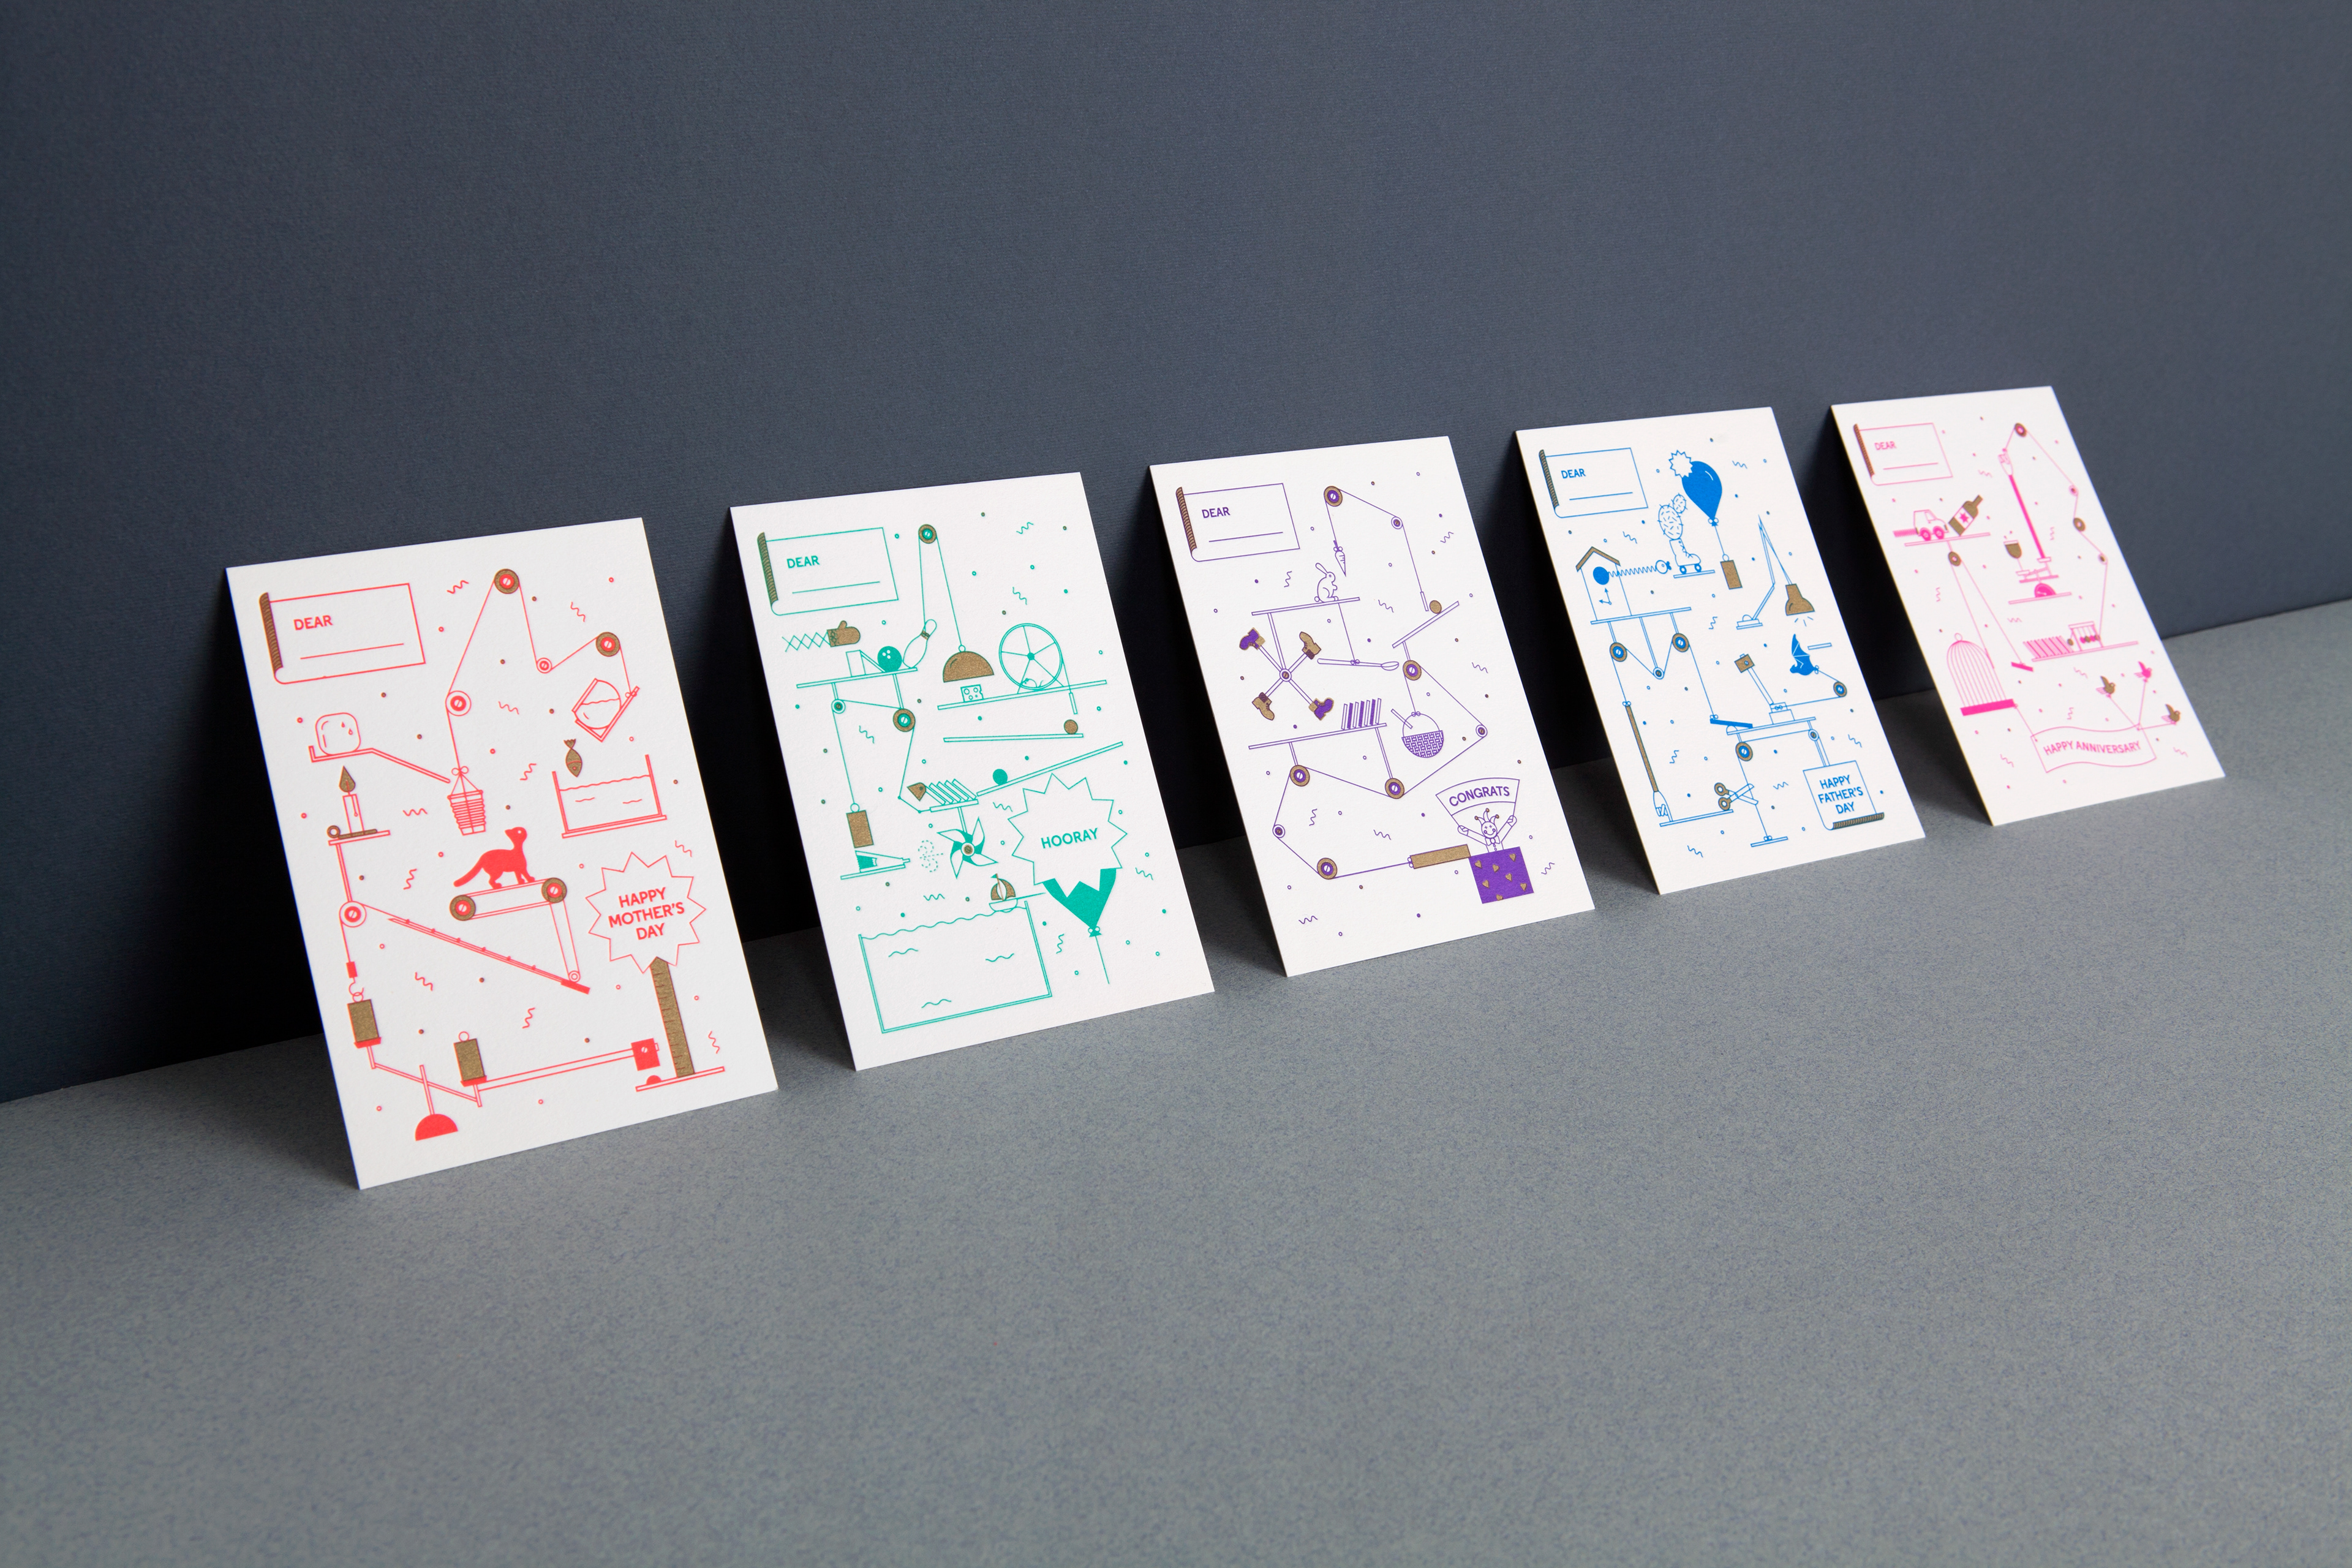 Mayra monobe design art direction machine series greeting cards inspired by childhood games and rube goldbergs inventions this series of 5 letterpress a6 cards tell different stories each ending up with a fun greeting m4hsunfo